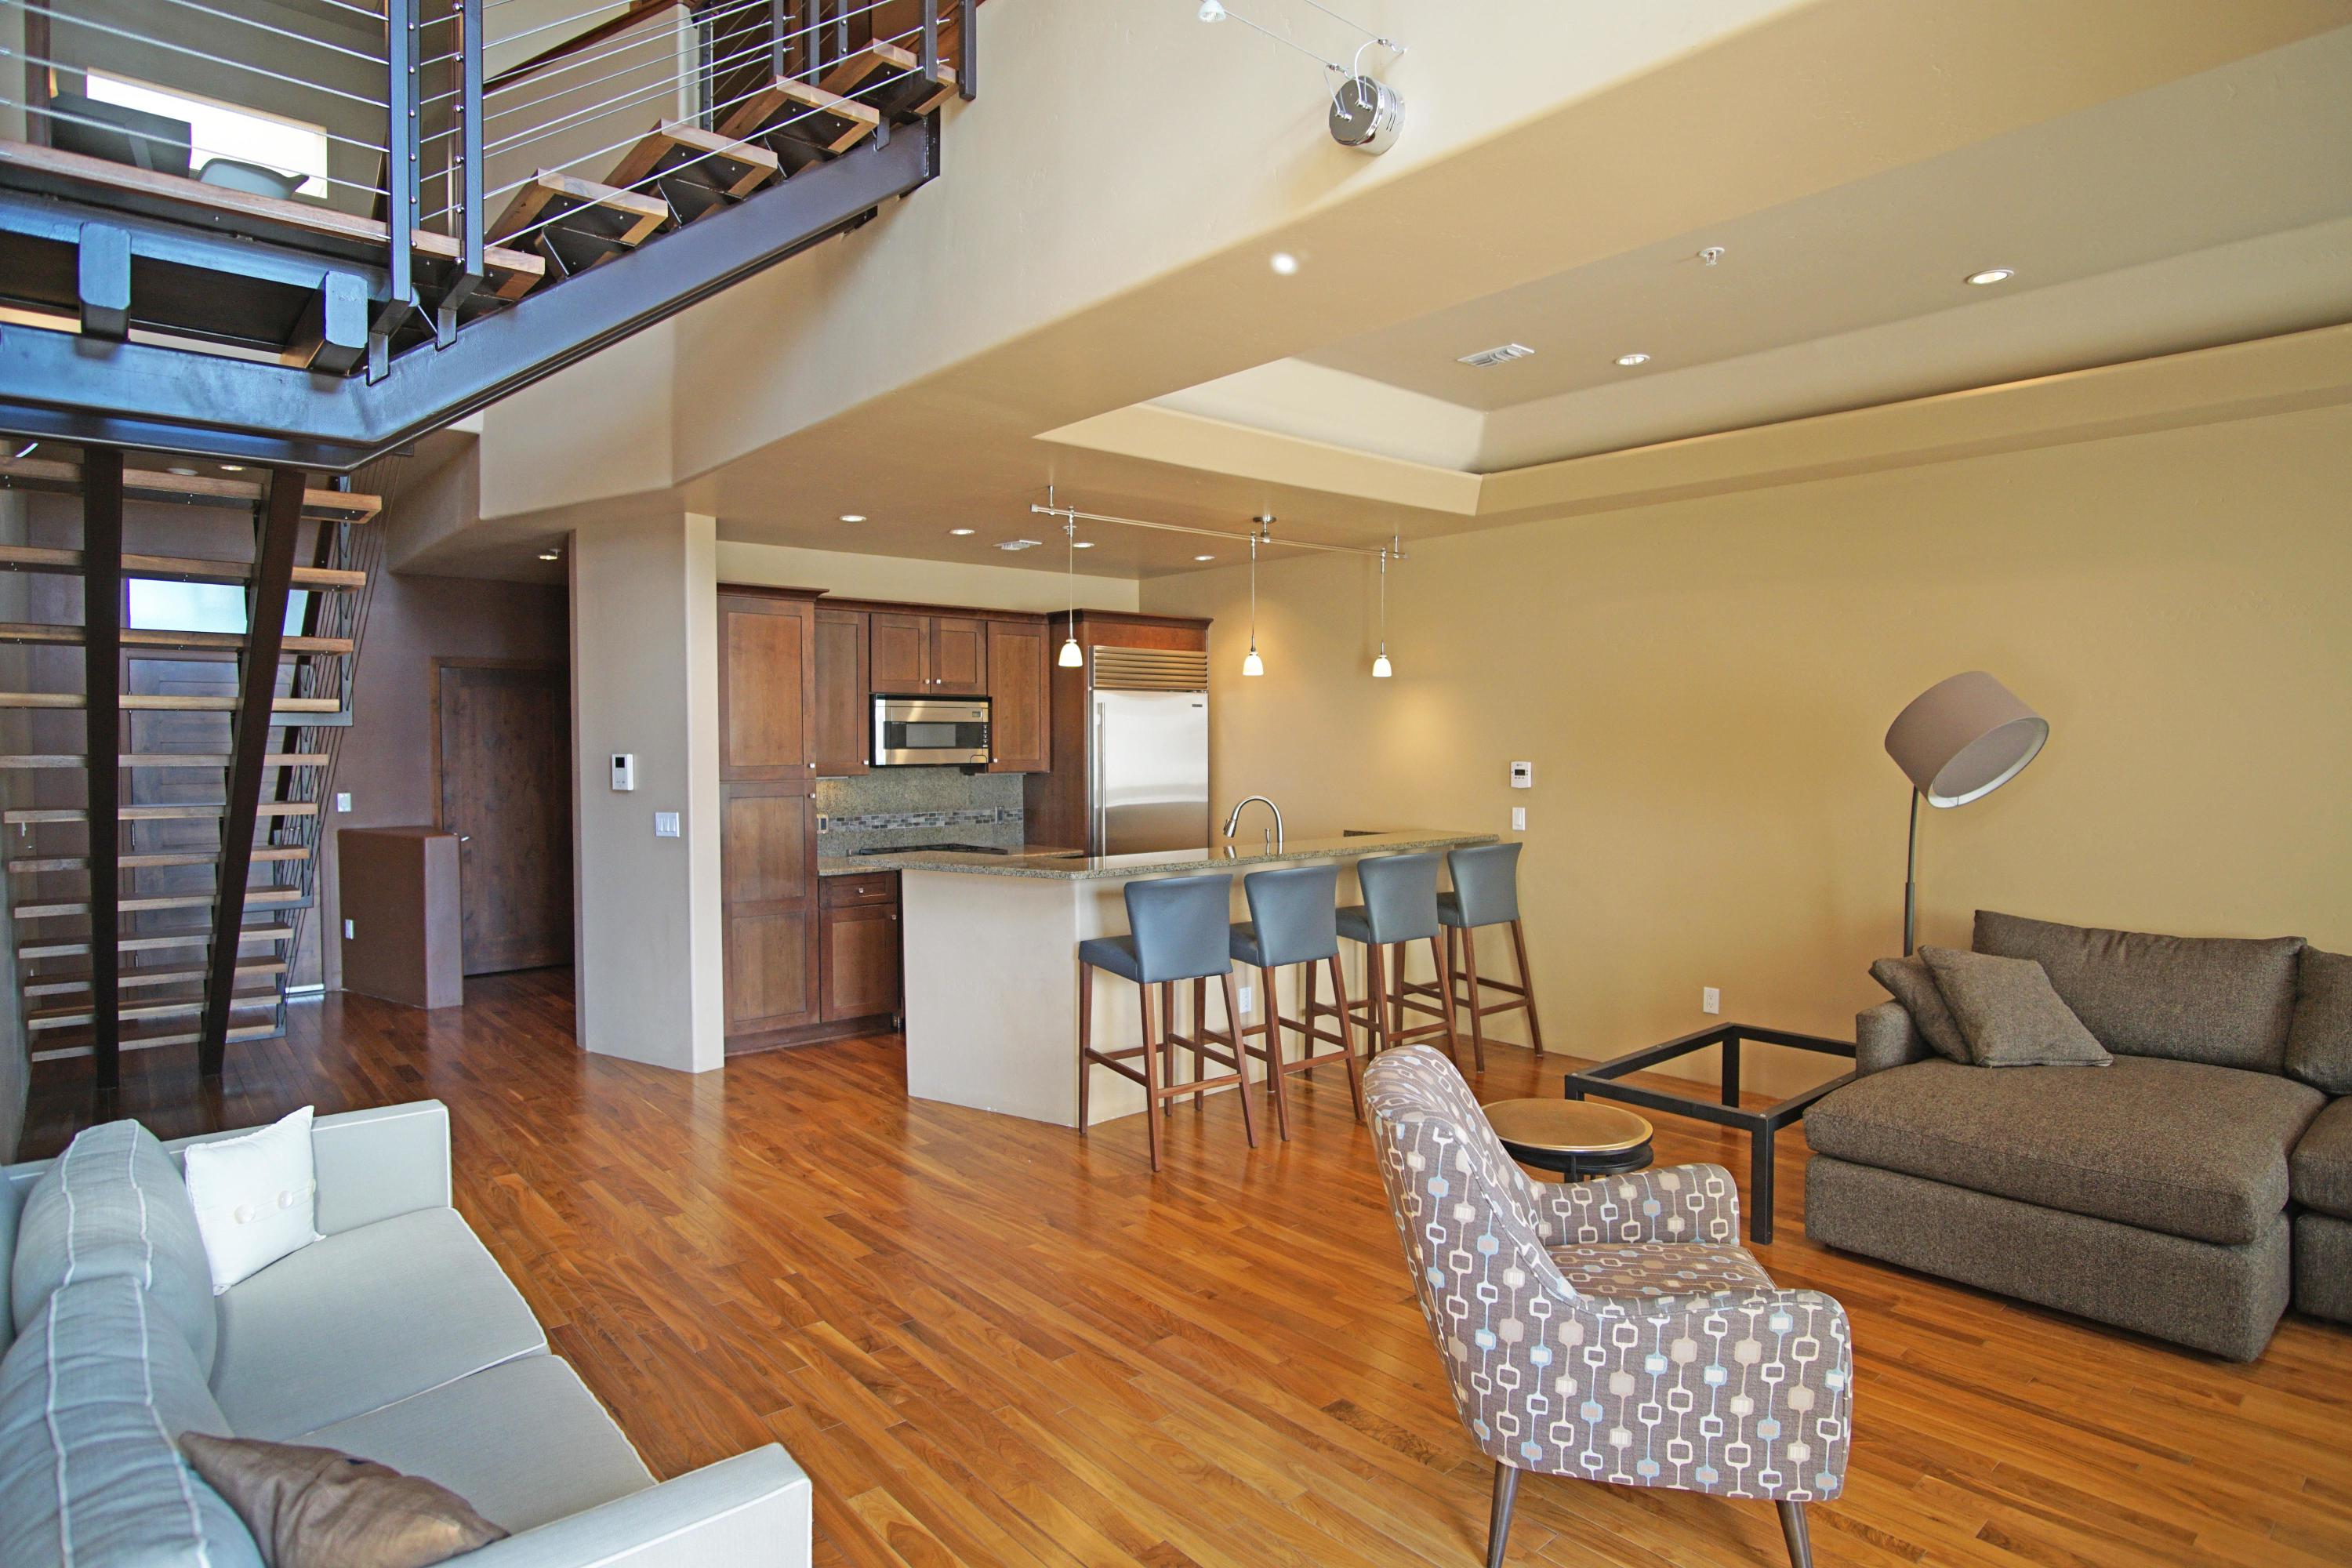 PRICED TO SELL QUICK!!  Super Clean, has that new house smell... Includes 2 car garage. Will NOT last long.. ''The Place at Nob Hill'' offers luxury living in the heart of Nob Hill, this contemporary style condo with 1 small balcony that faces south giving the owner(s) a spectacular view of Nob Hill. The natural light shines through the open floor plan with real wood floors. Stainless steel Wolf appliances in the kitchen with granite counter tops, while the living room is wired with surround sound. The master bedroom features a custom closet with built in shelves to maximize the space. The 2nd bedroom has an attached full bath. This unit has a 2 car tandem garage, right in the heart of Knob Hill near shops, restaurants, breweries, studios, UNM, hospitals etc. what a great location!!